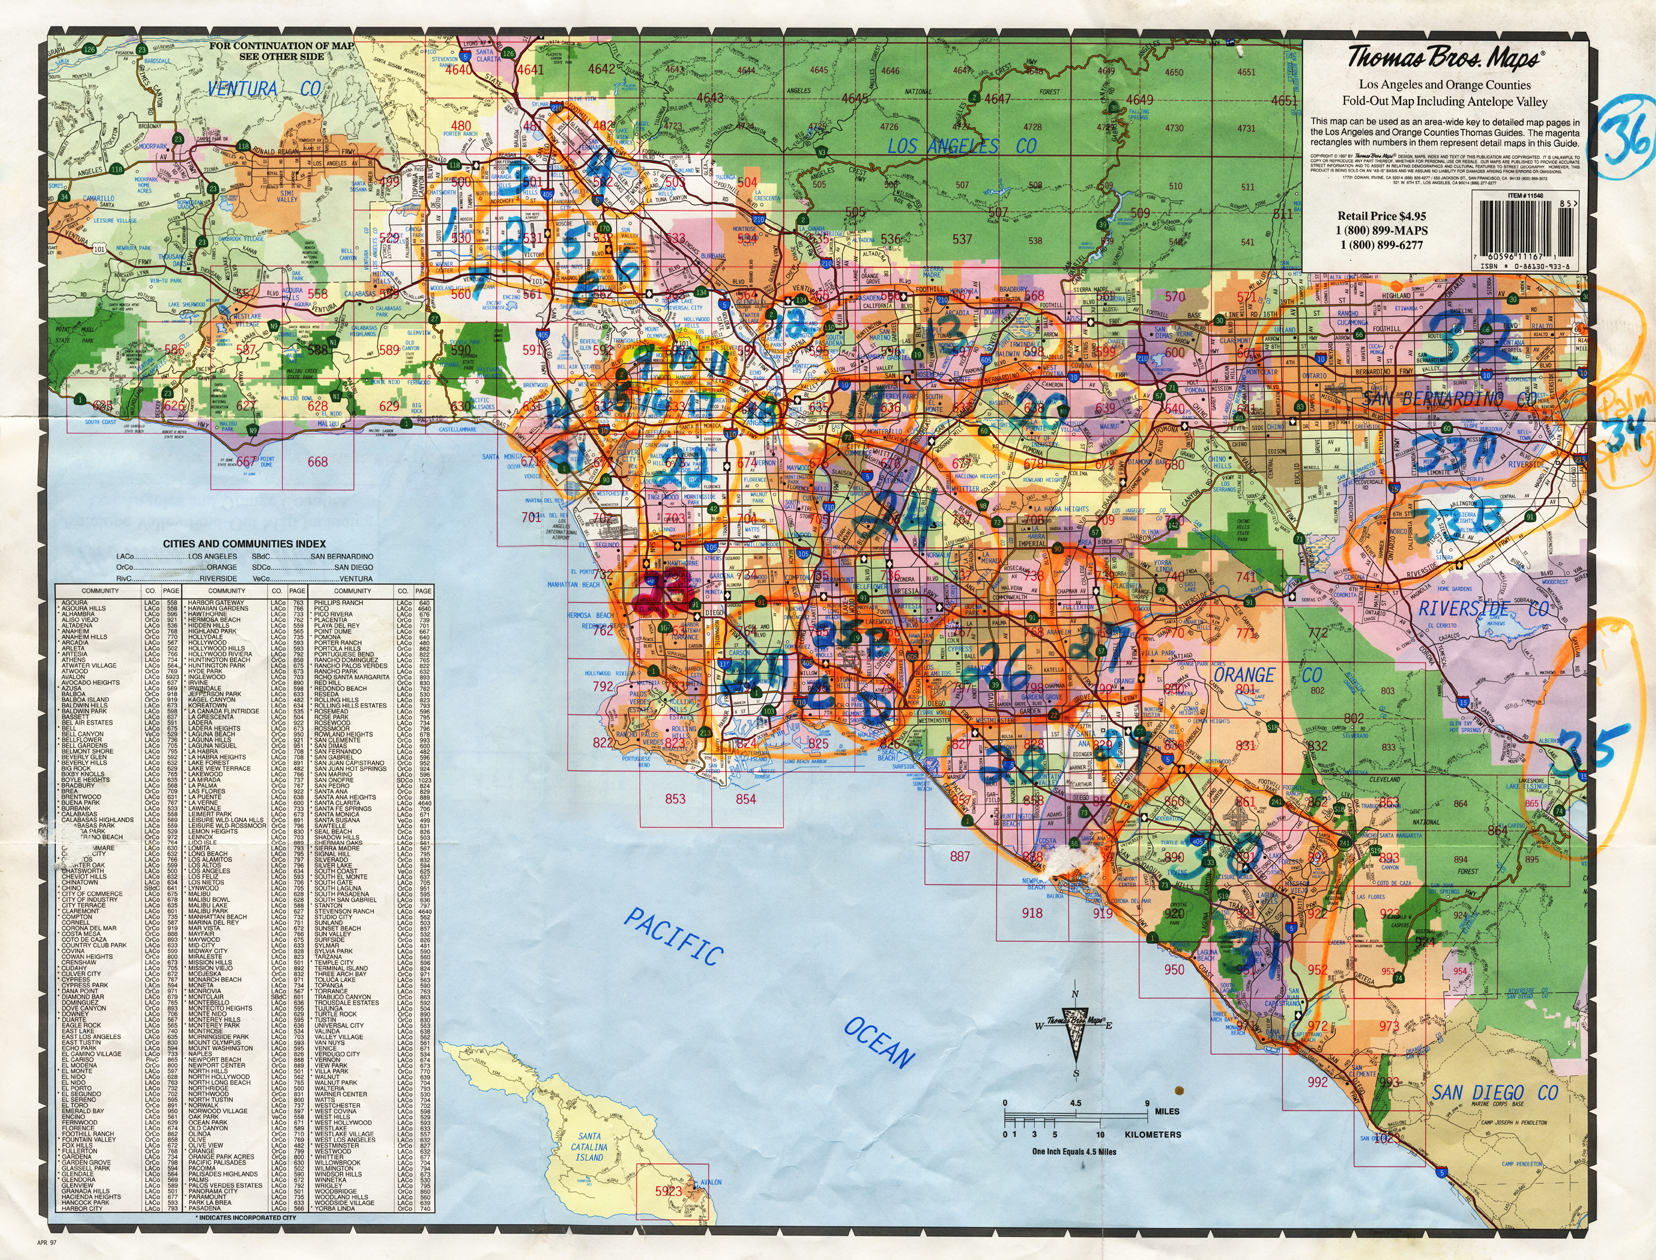 JEMM Distribution - Los angeles map westwood